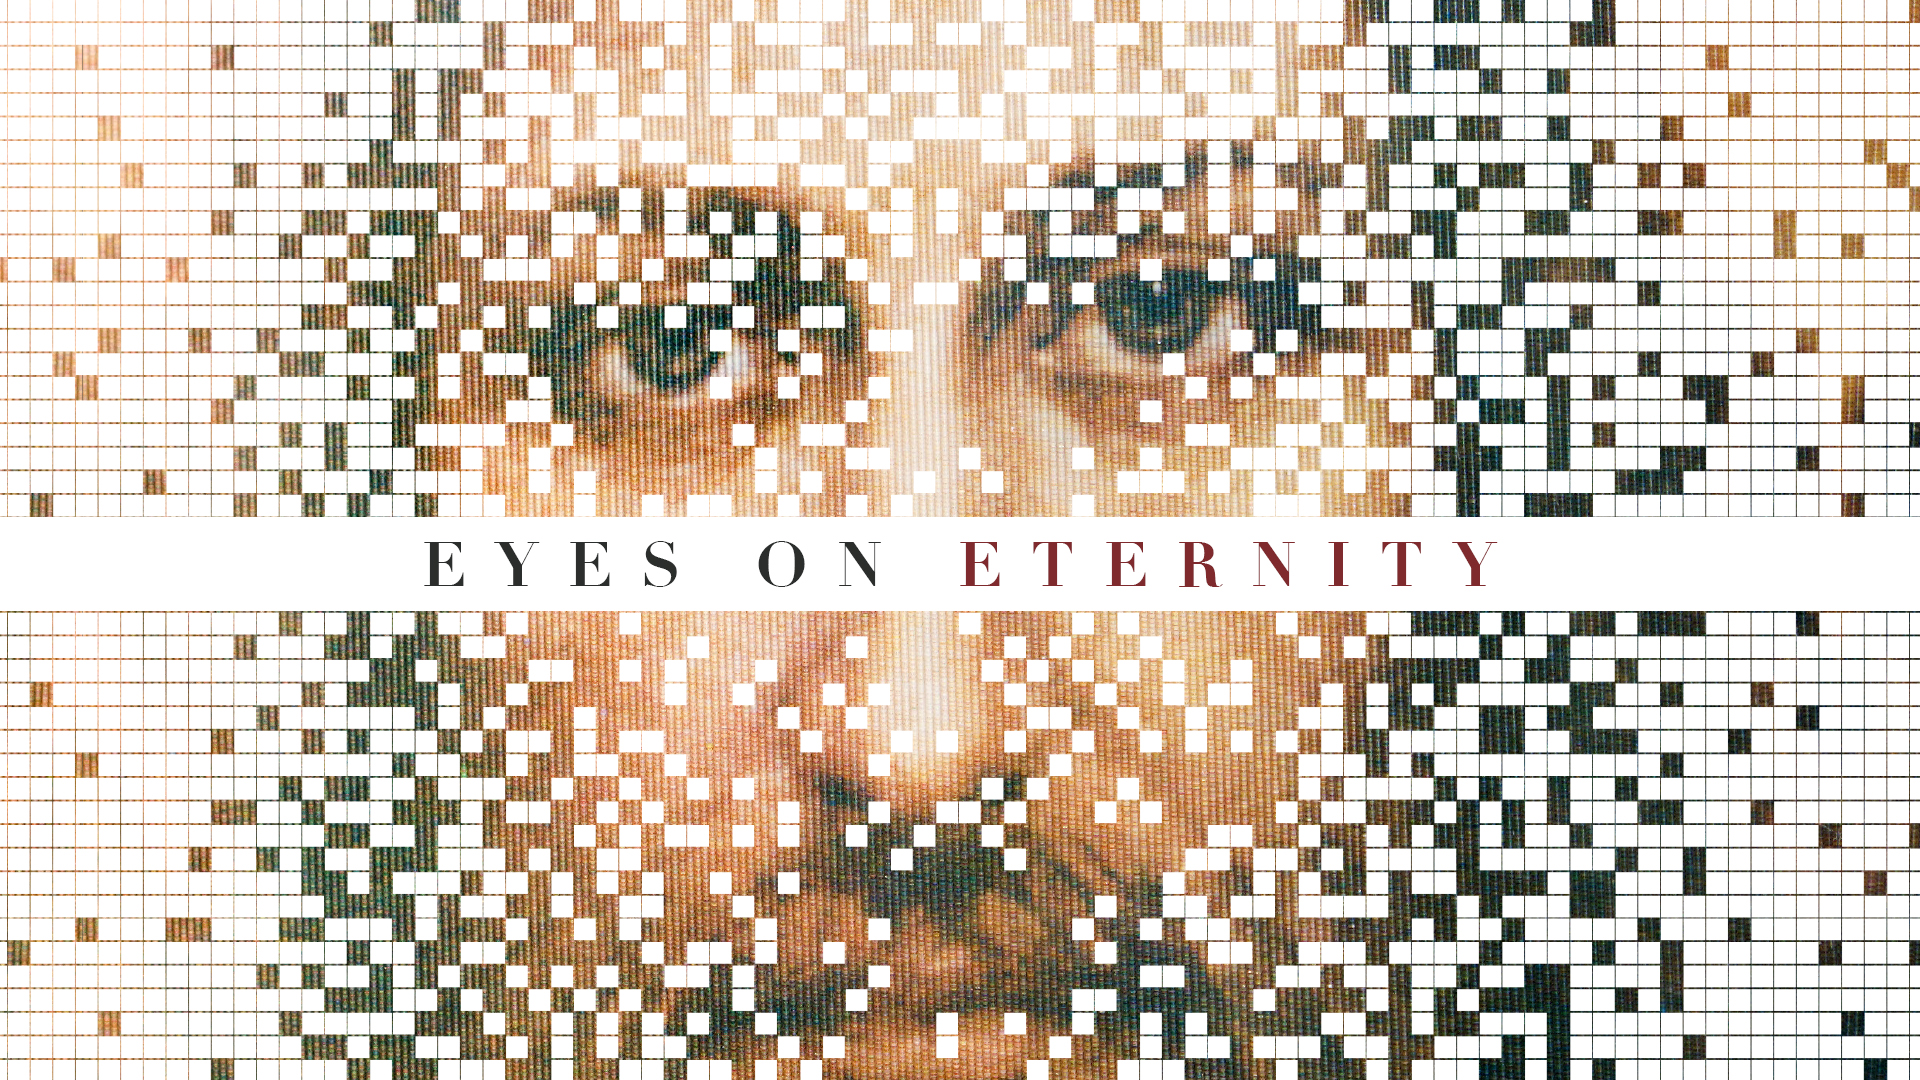 Eyes_On_Eternity_Slide.jpg